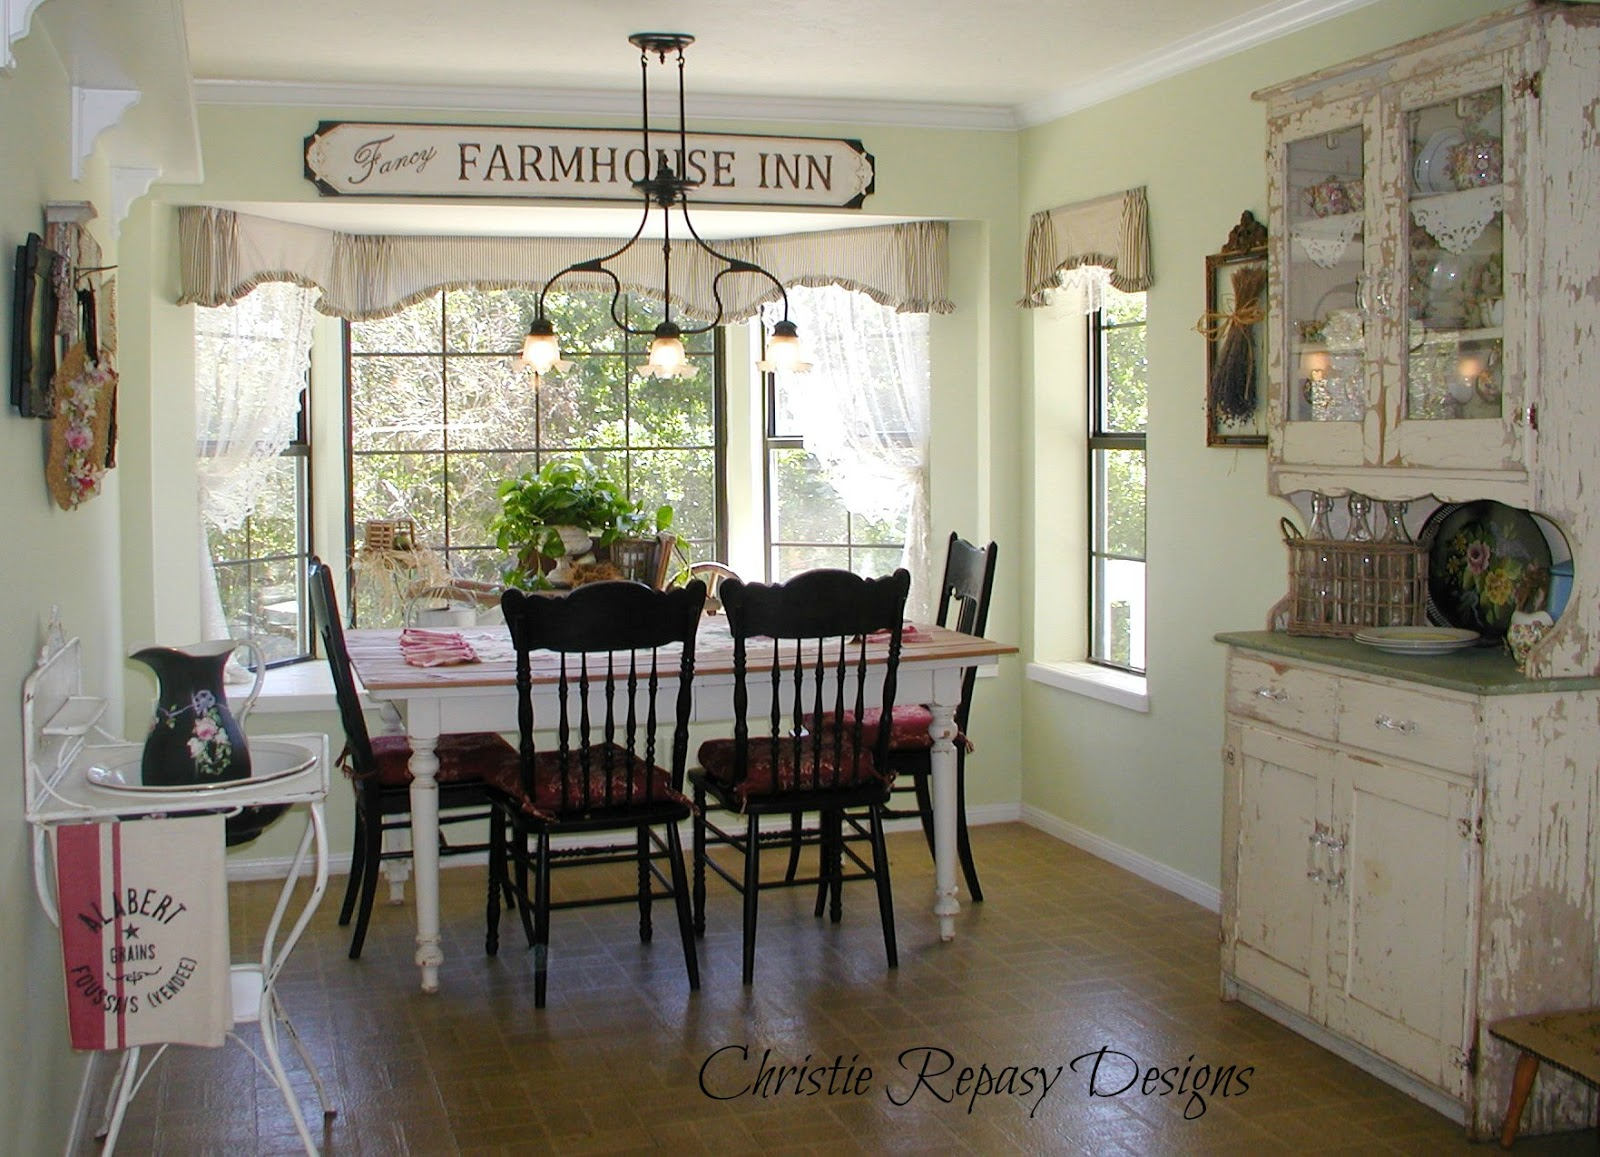 Chateau de fleurs my little country kitchen for French chateau kitchen designs